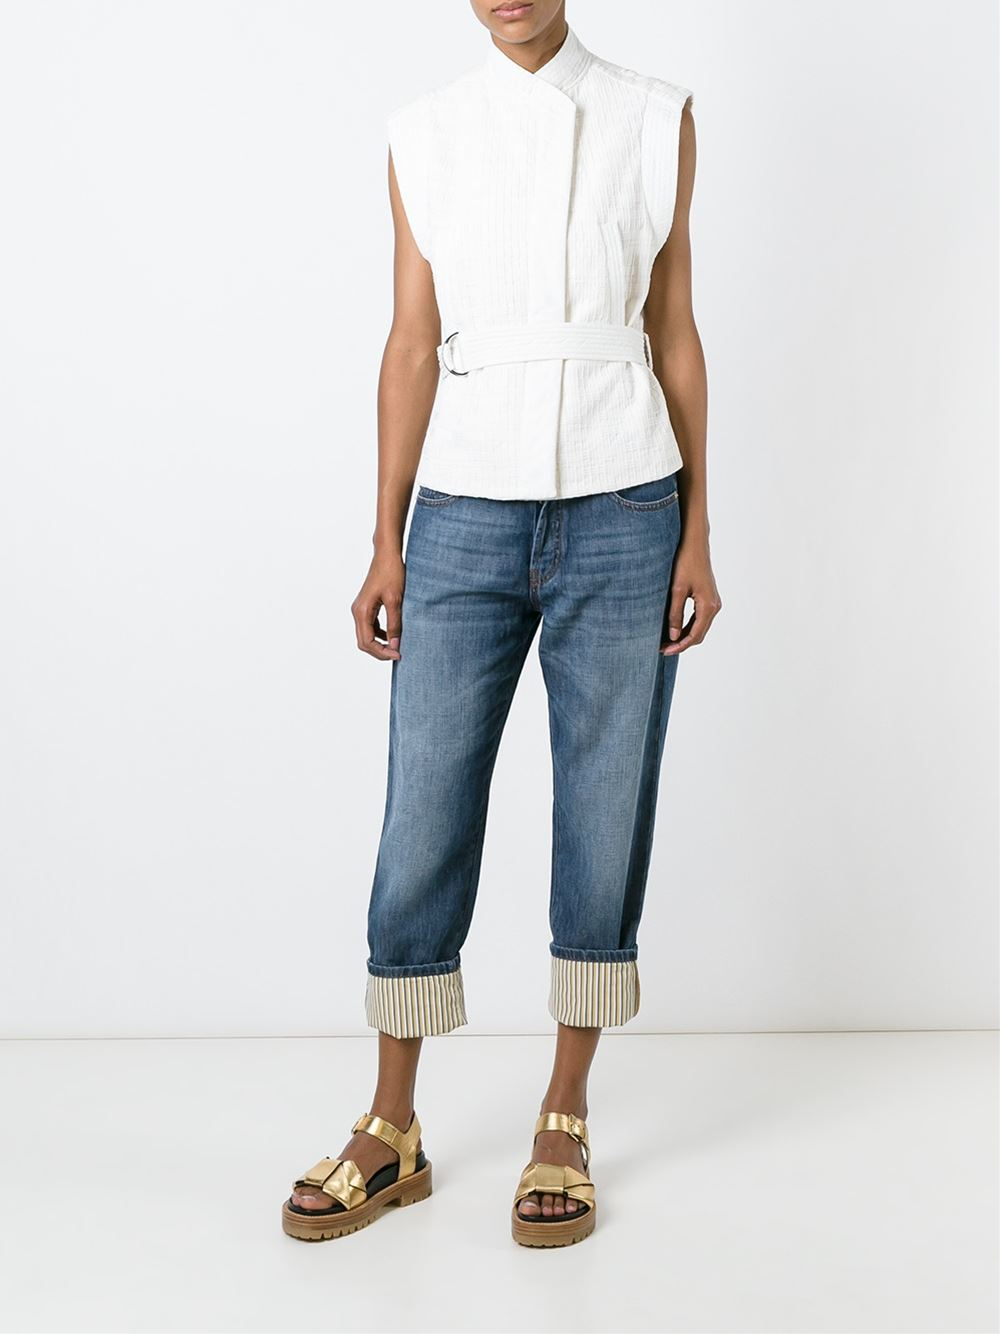 Lyst Marni Cropped Jeans In Blue